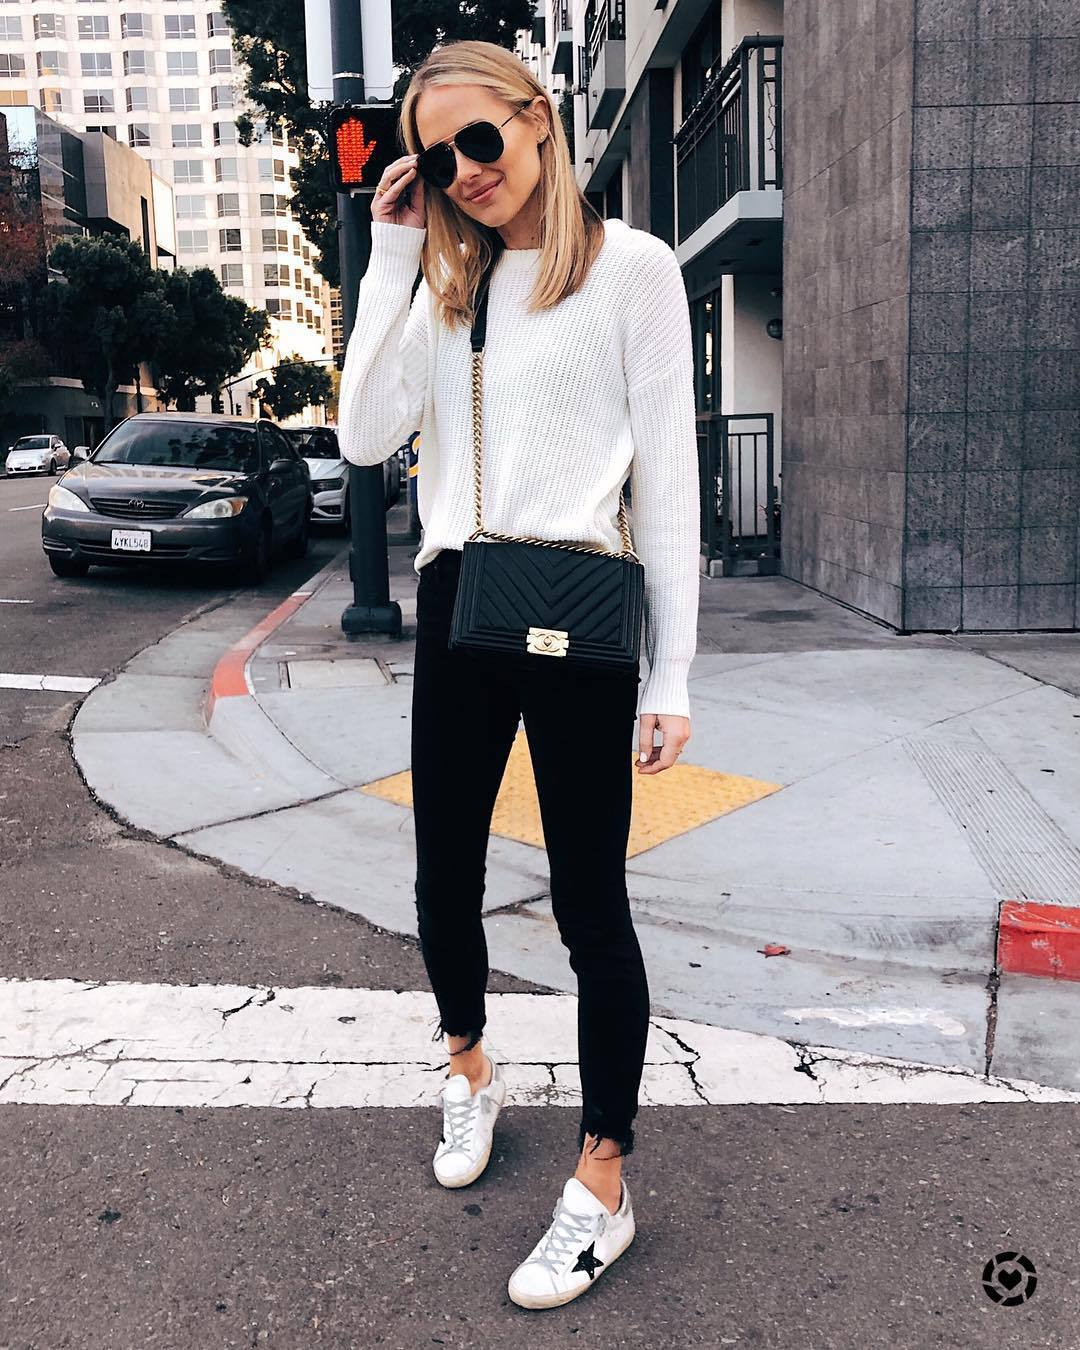 sweater white sweater knitted sweater white sneakers black skinny jeans cropped jeans black bag crossbody bag sunglasses streetstyle